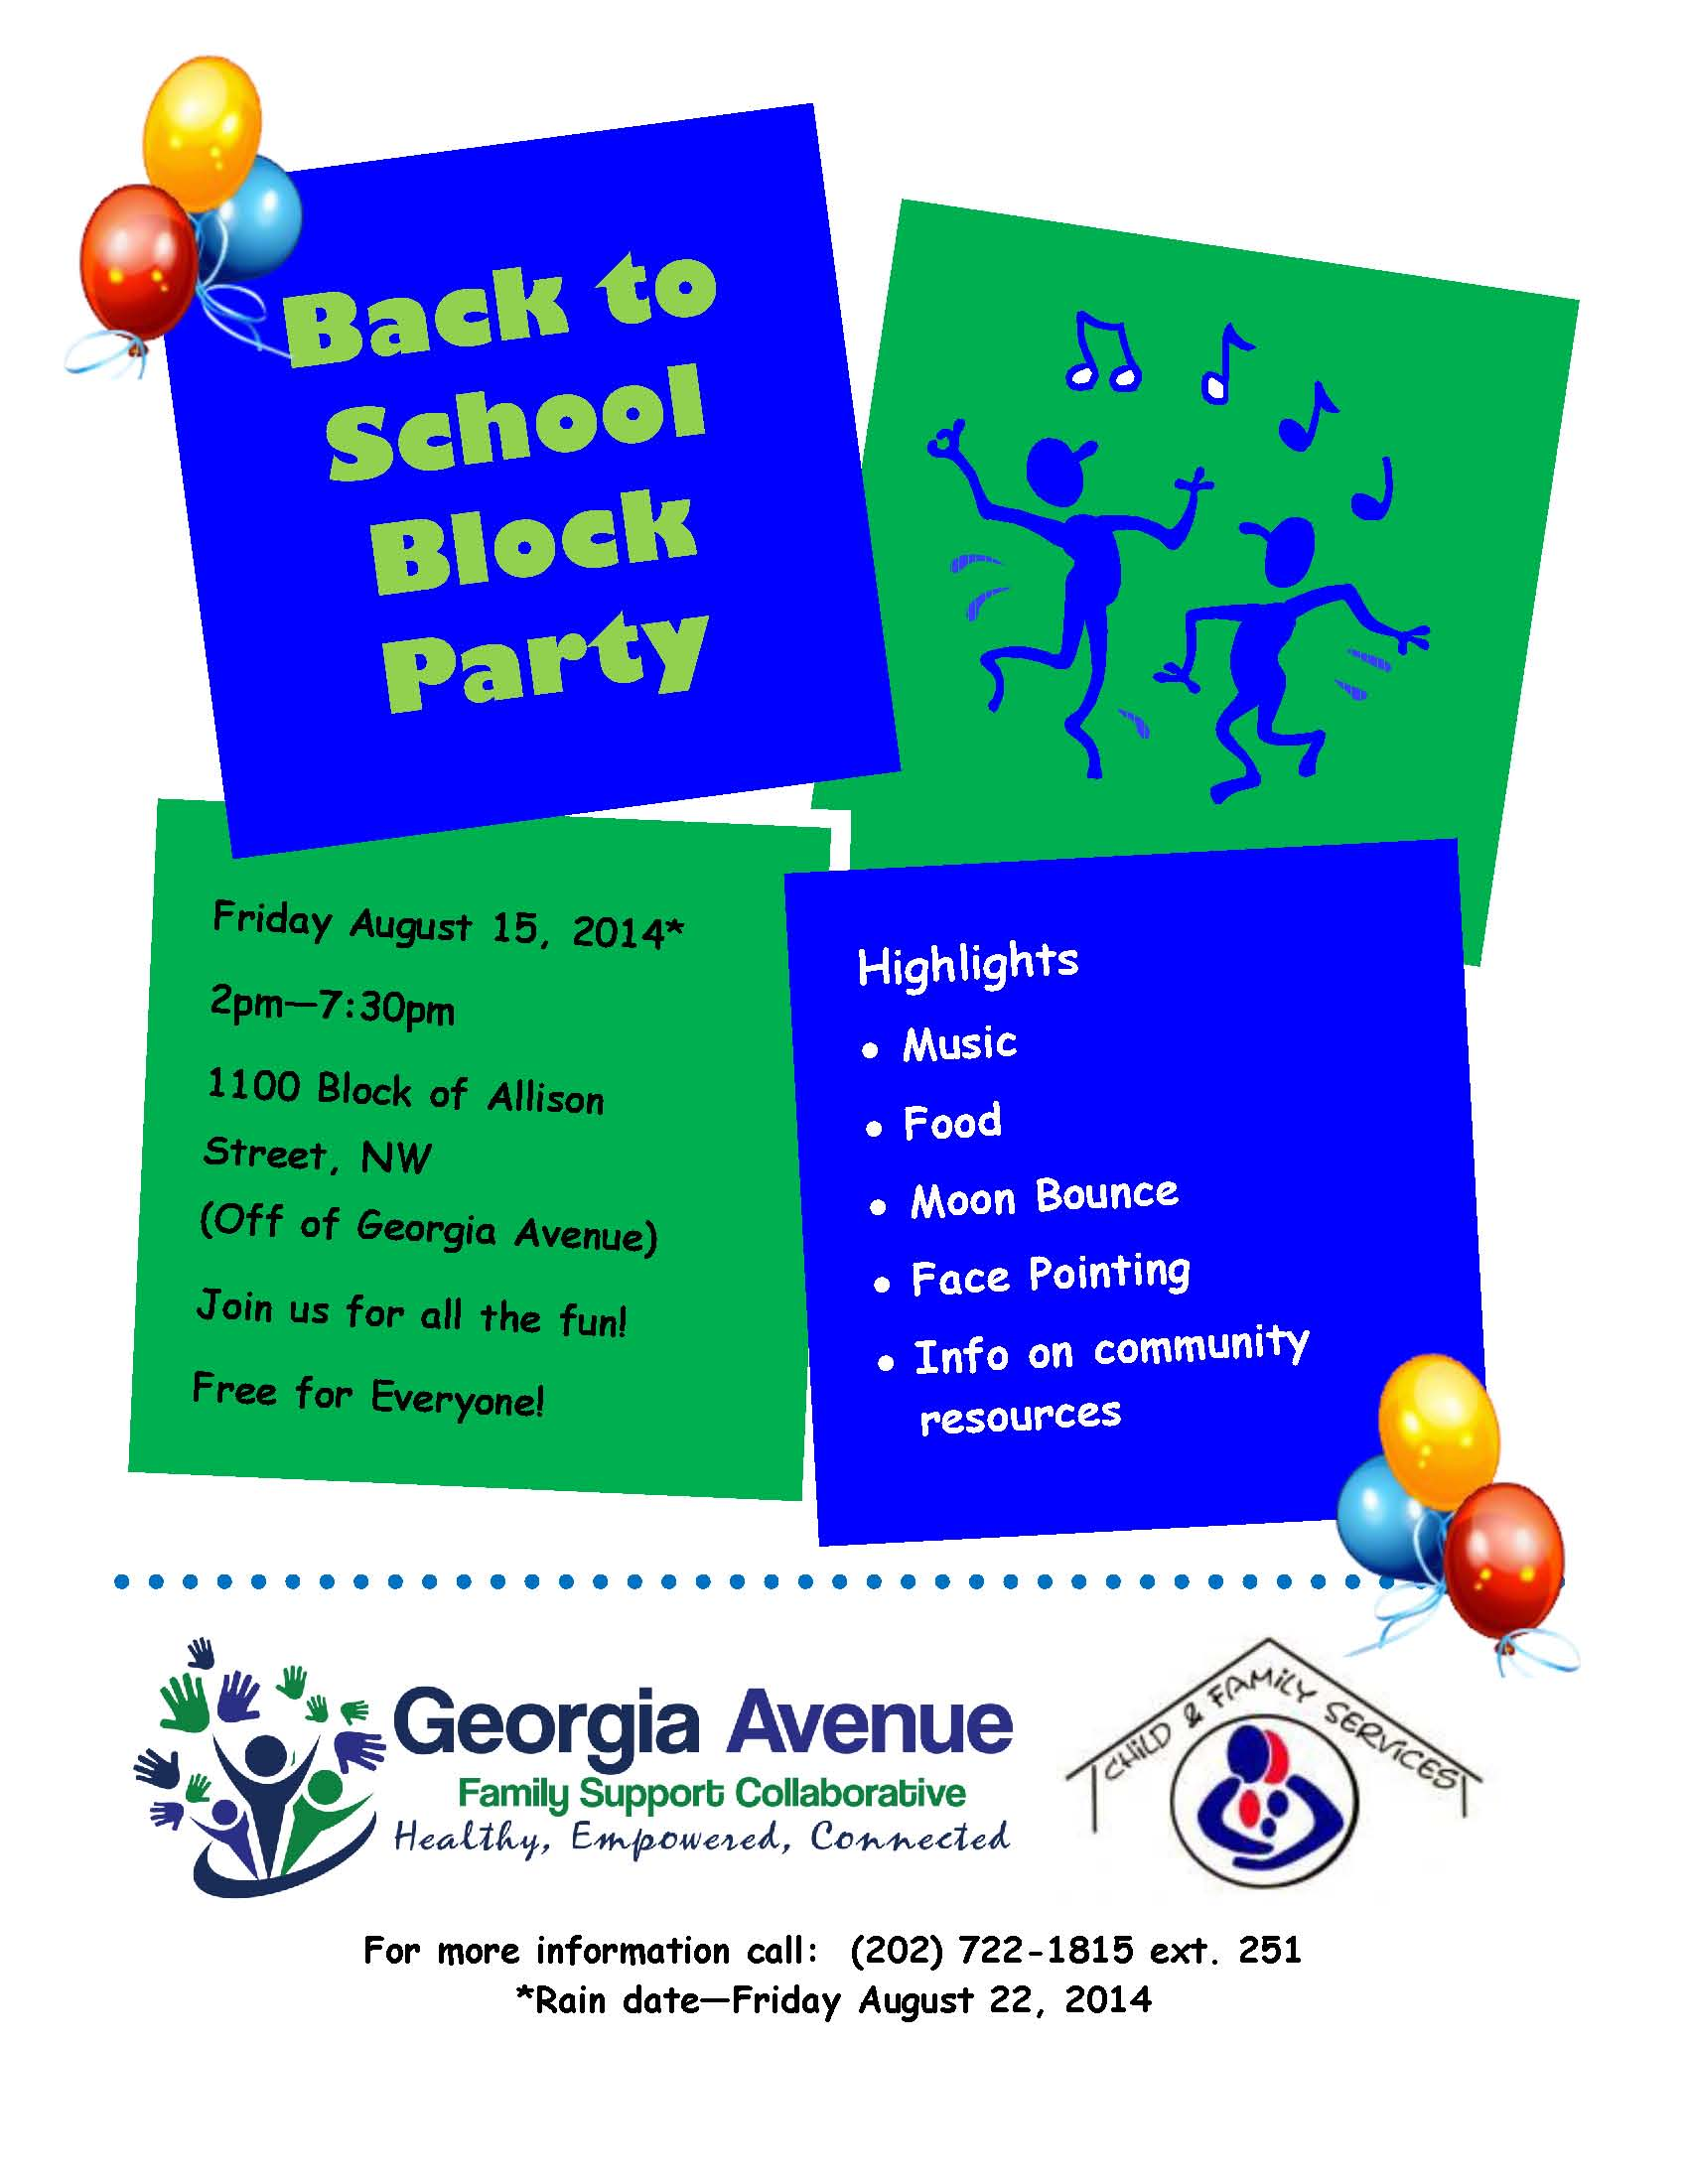 2014 Back to School Block Party